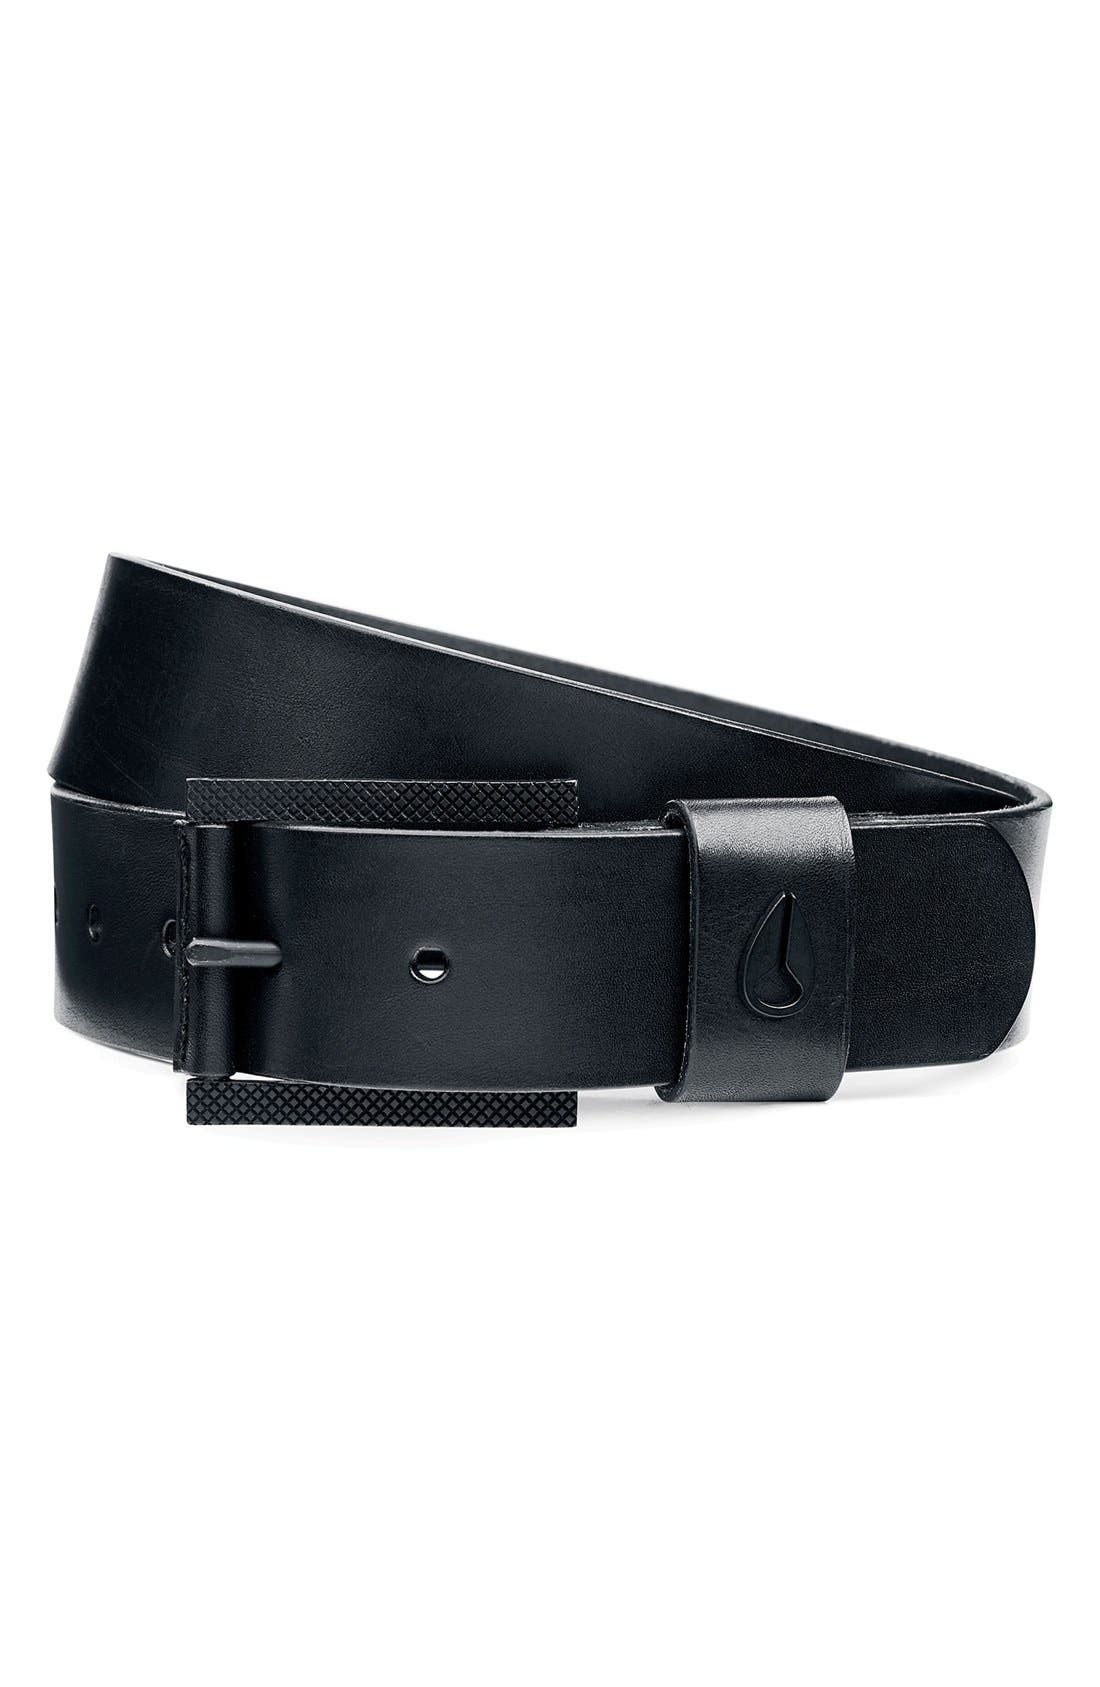 Main Image - Nixon 'Americana' Leather Belt